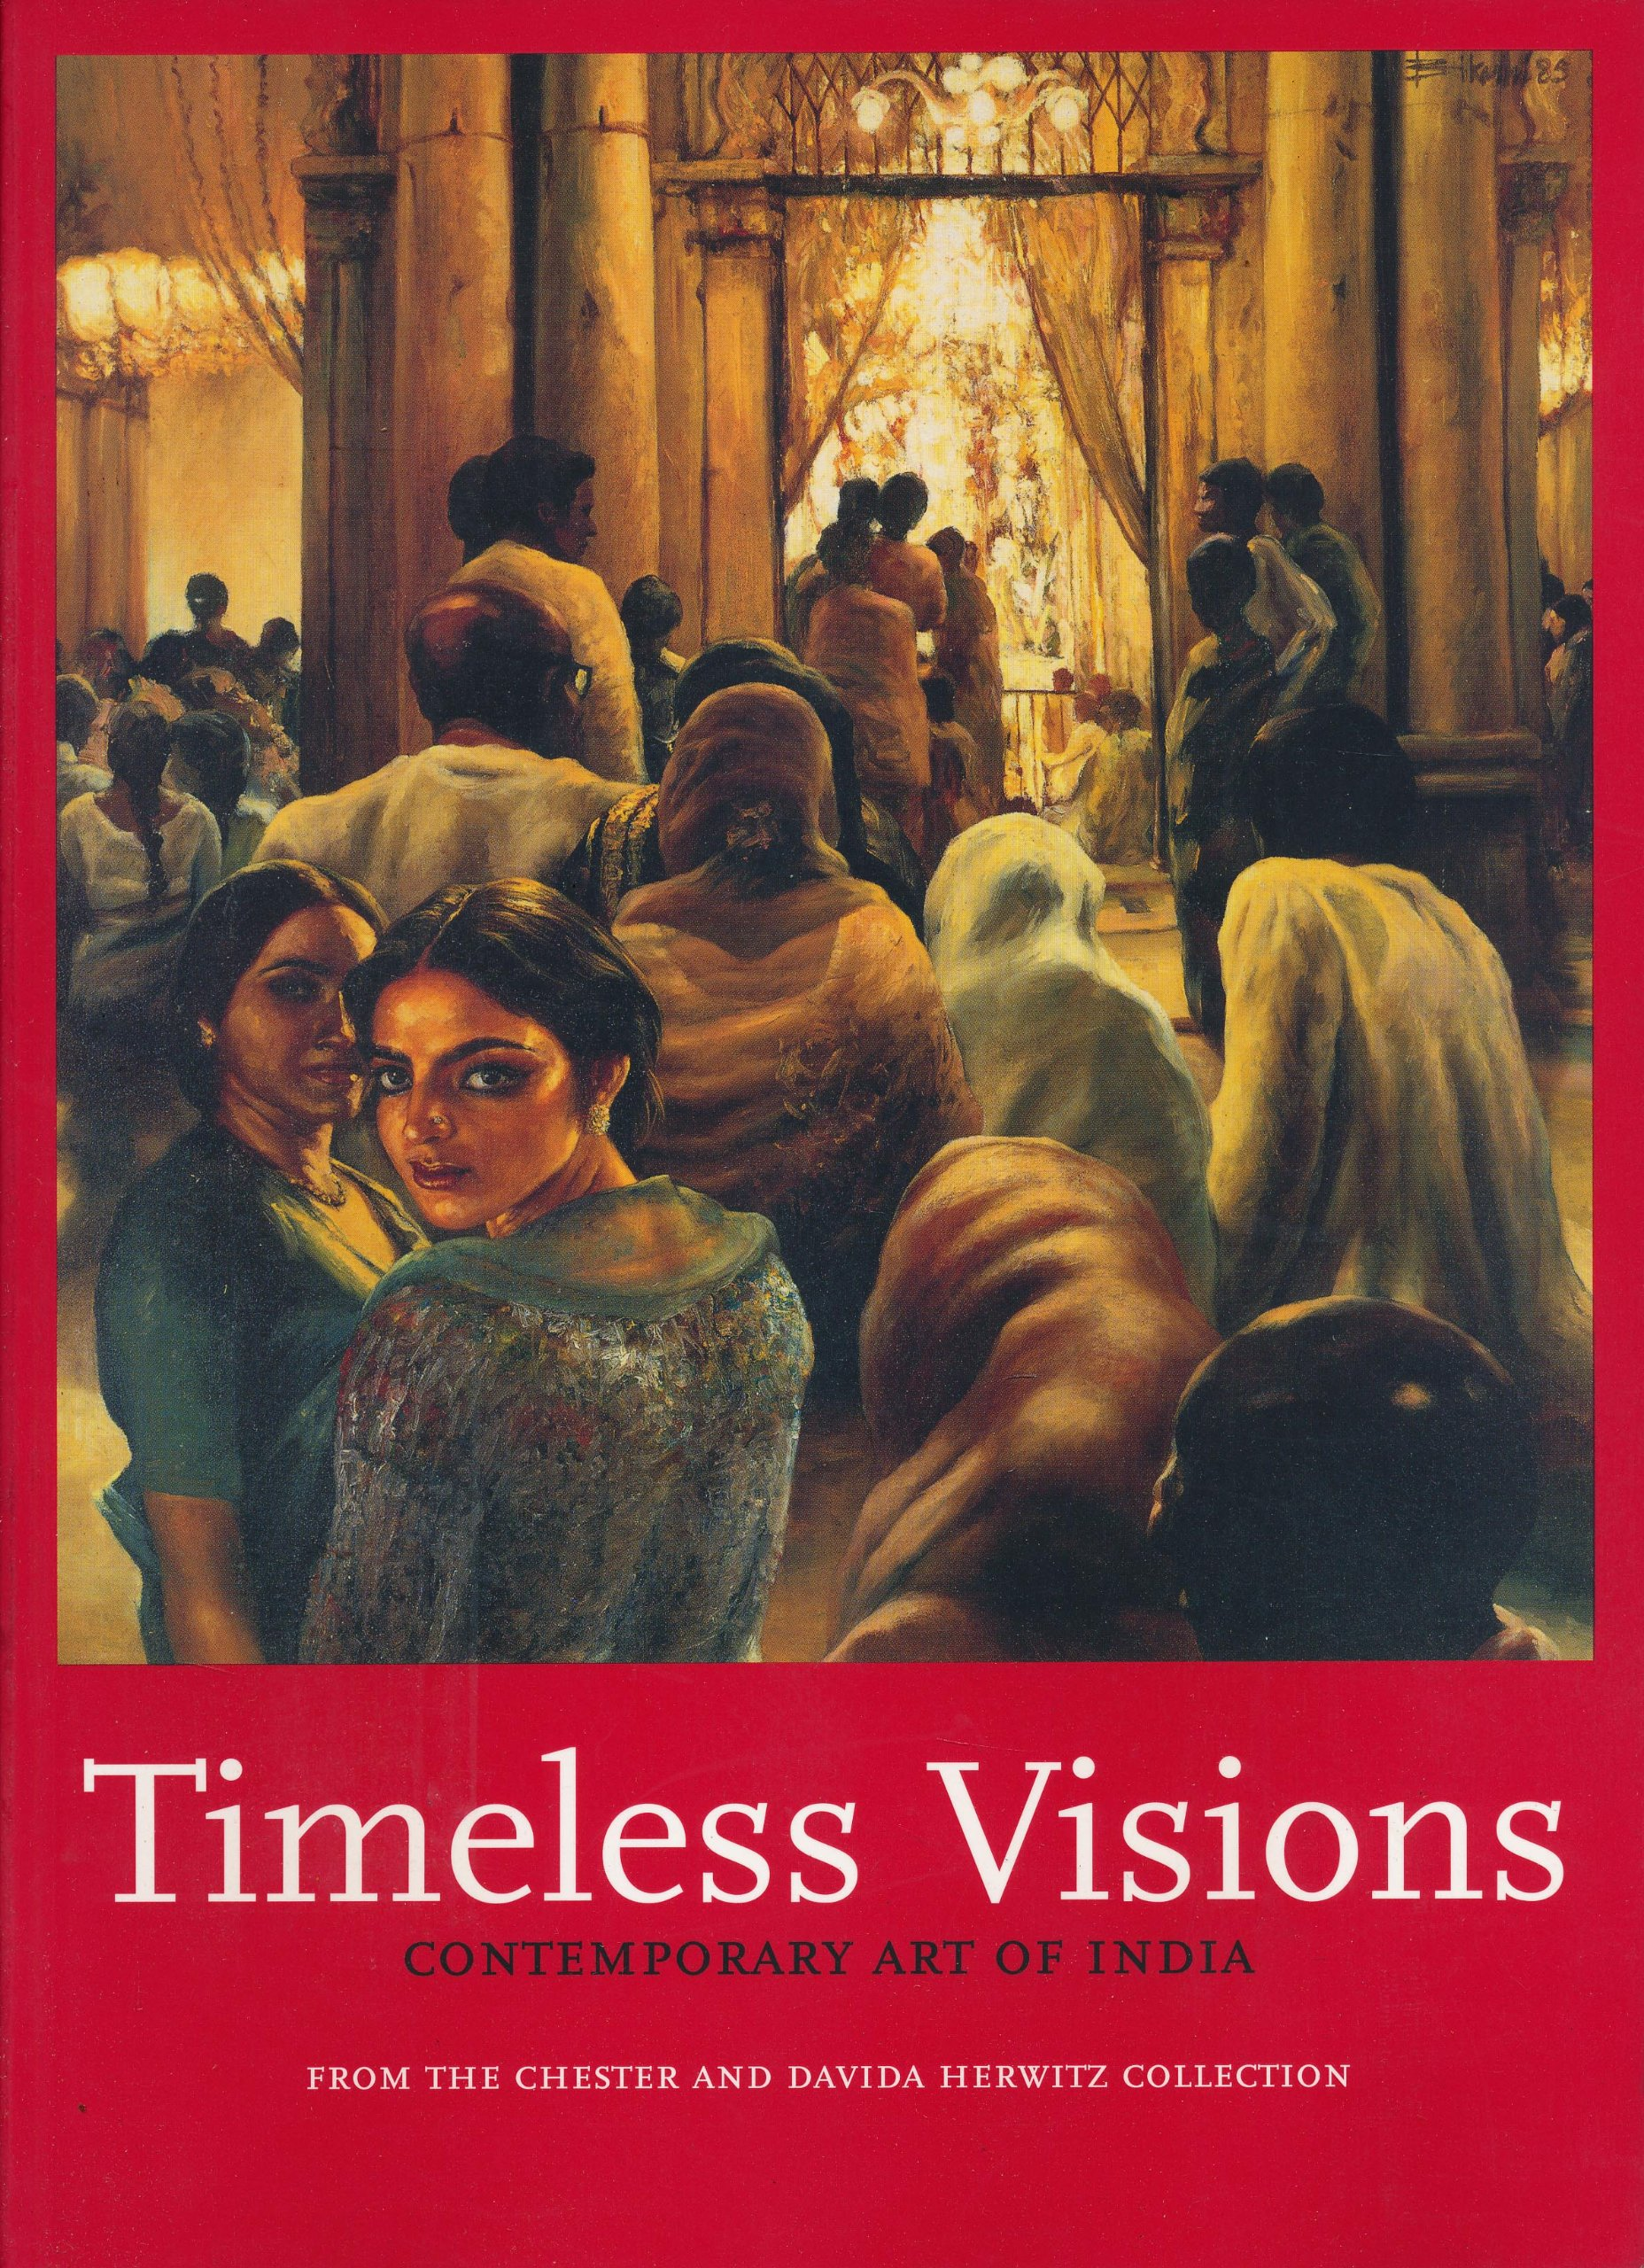 Timeless Visions: Contemporary Art of India from the Chester and Davida Herwitz Collection Text fb2 book